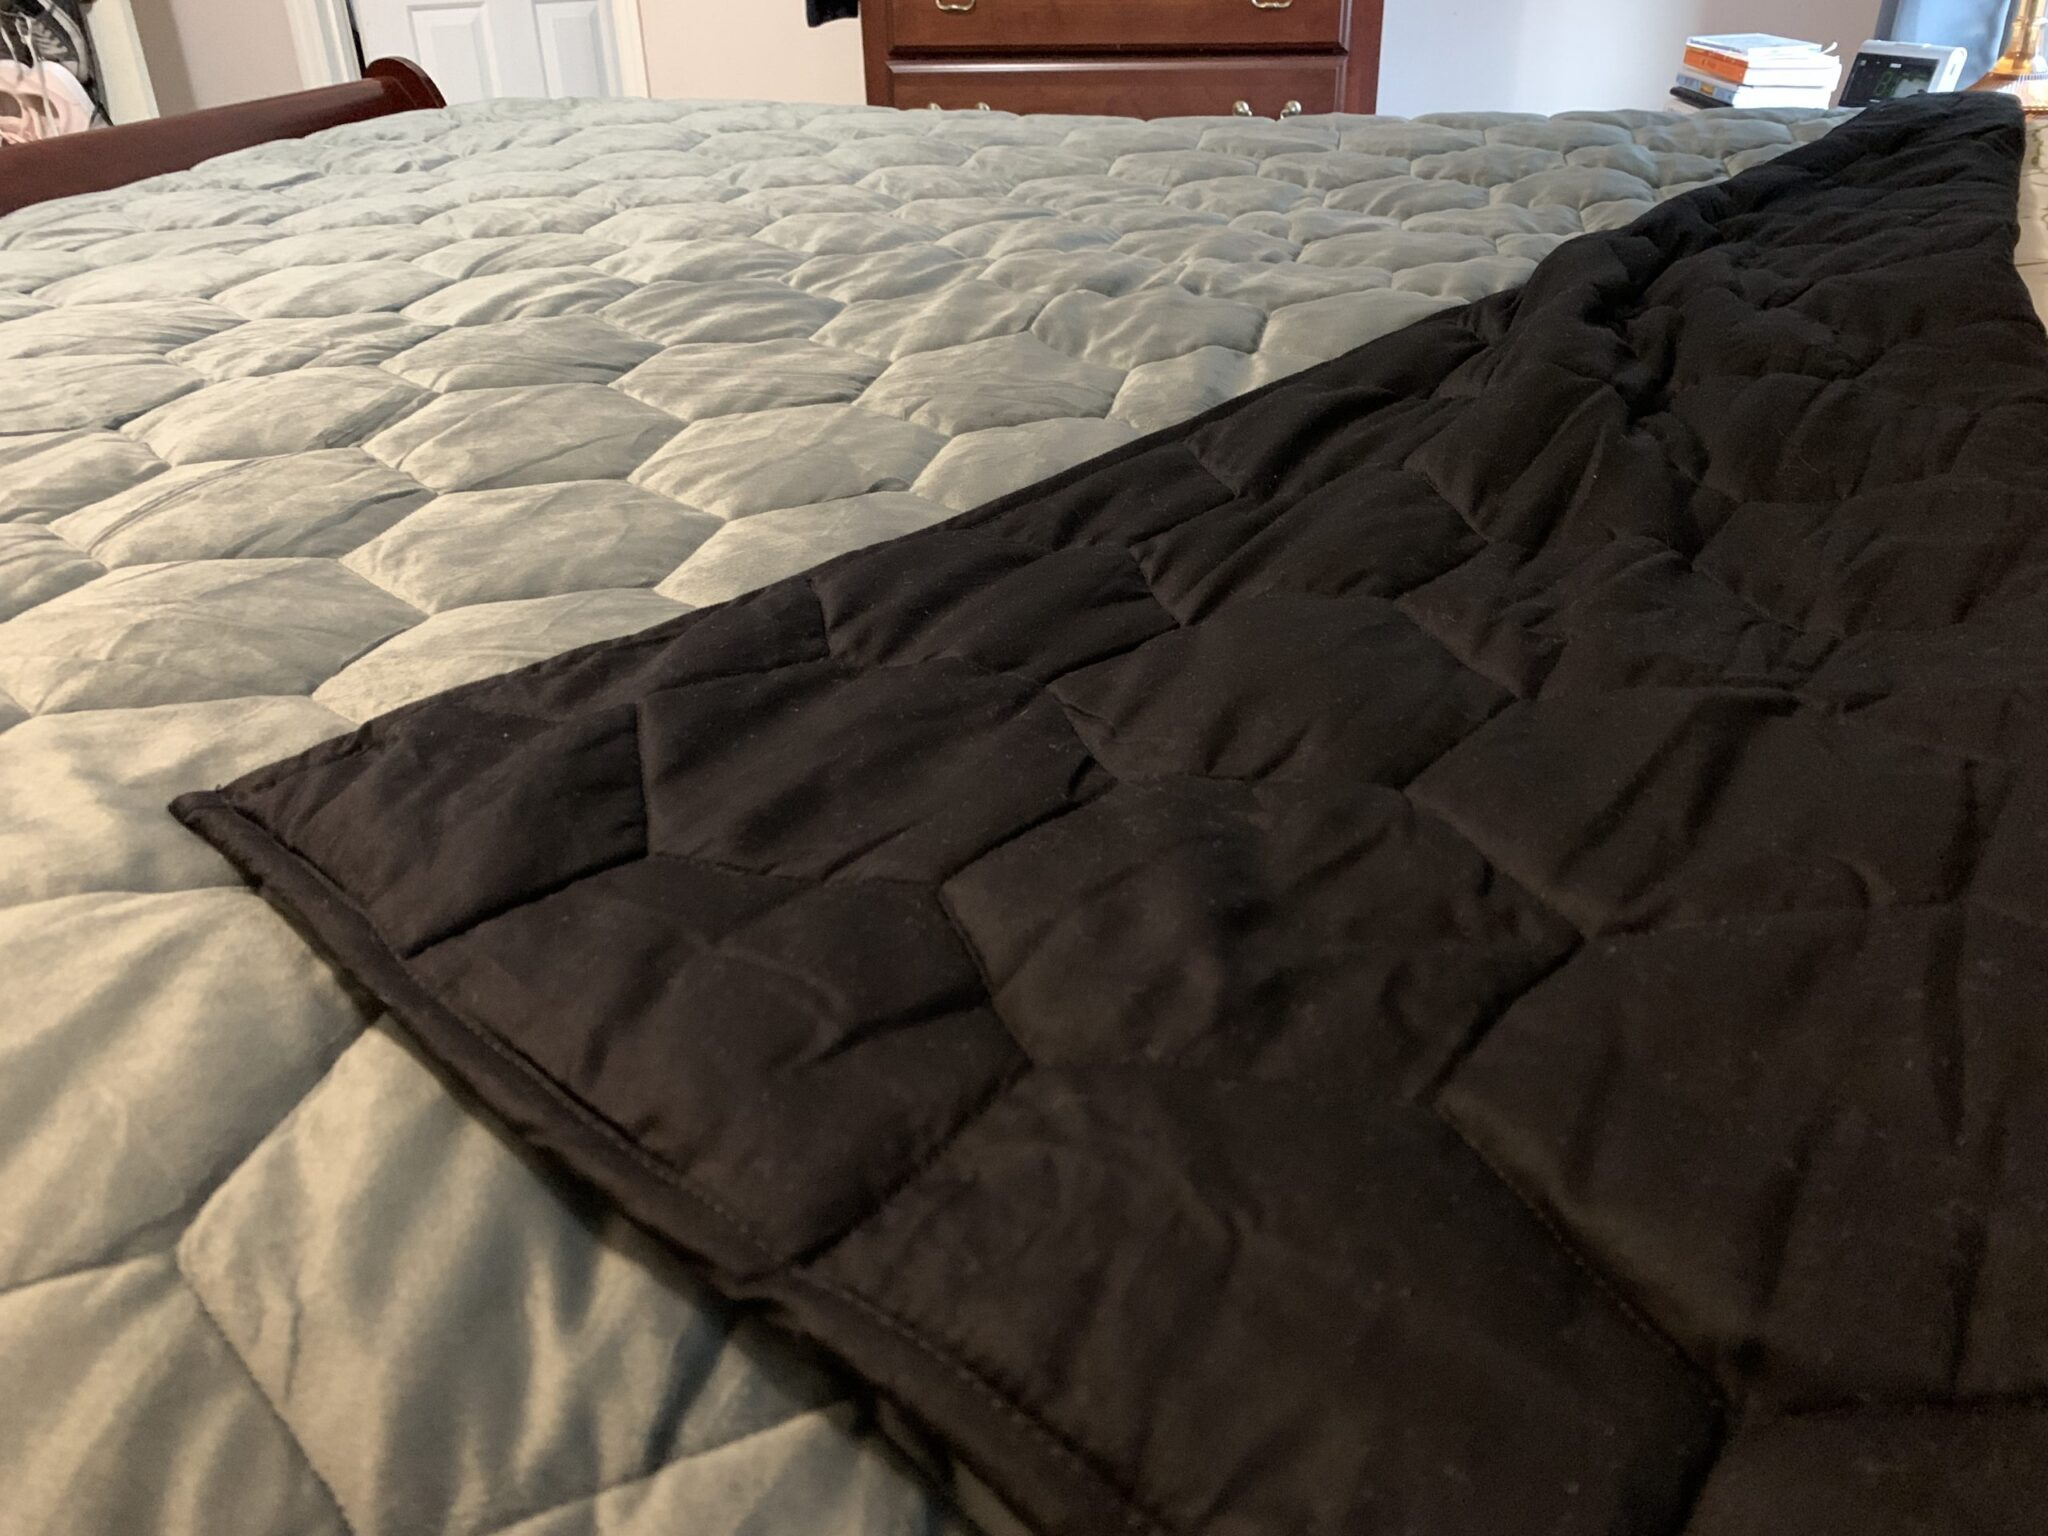 layla weighted blanket folded